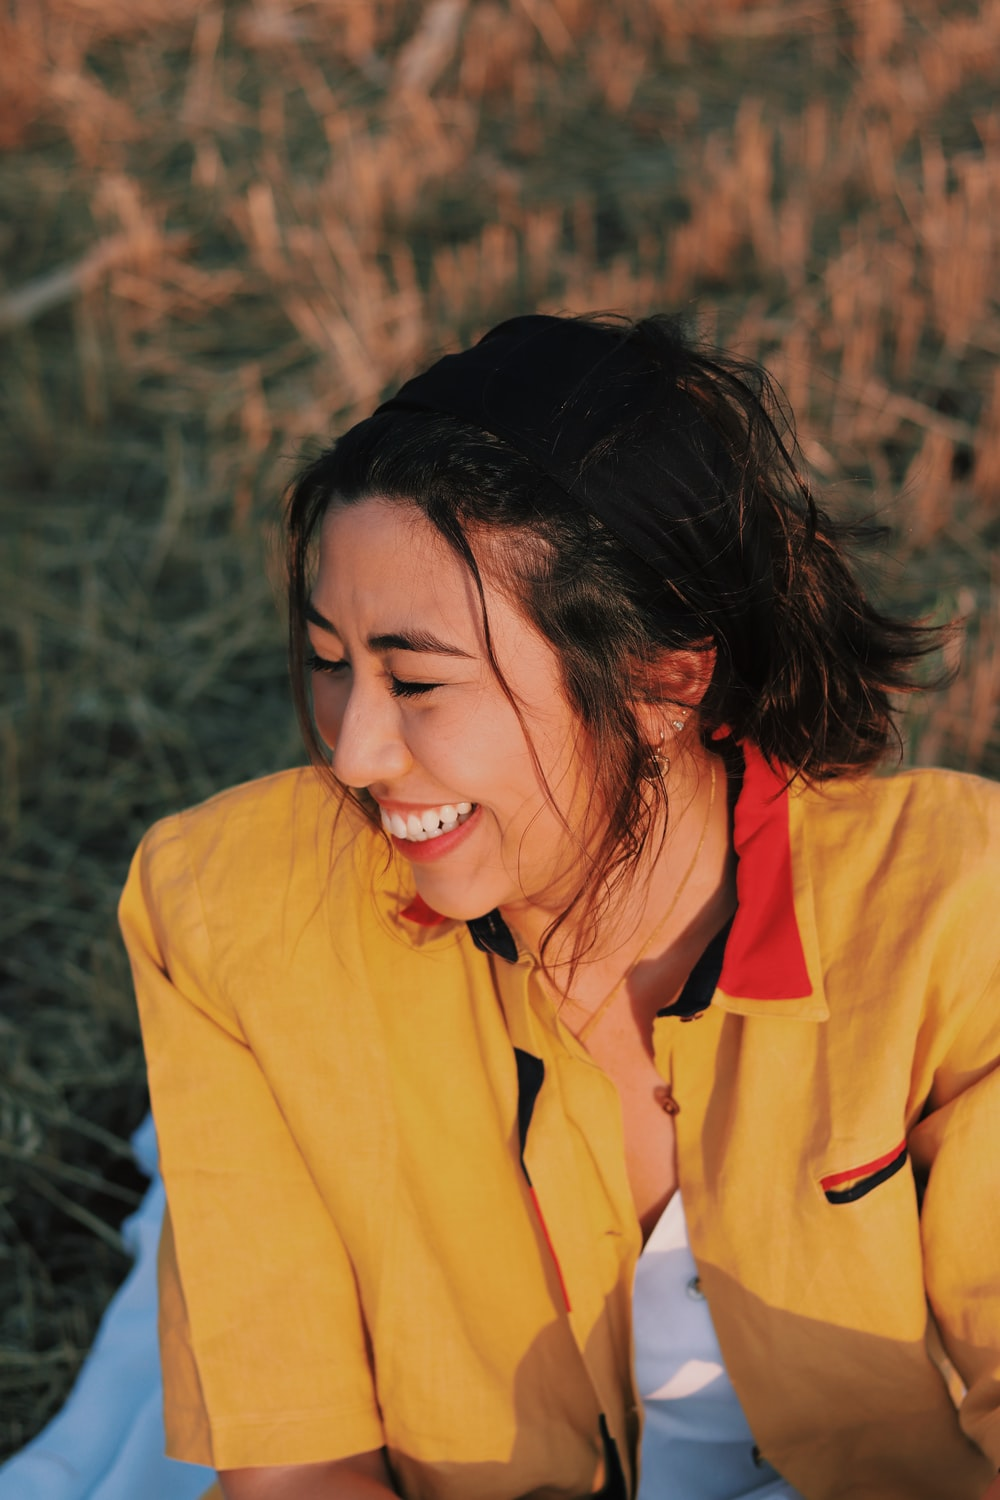 woman in yellow button up shirt smiling